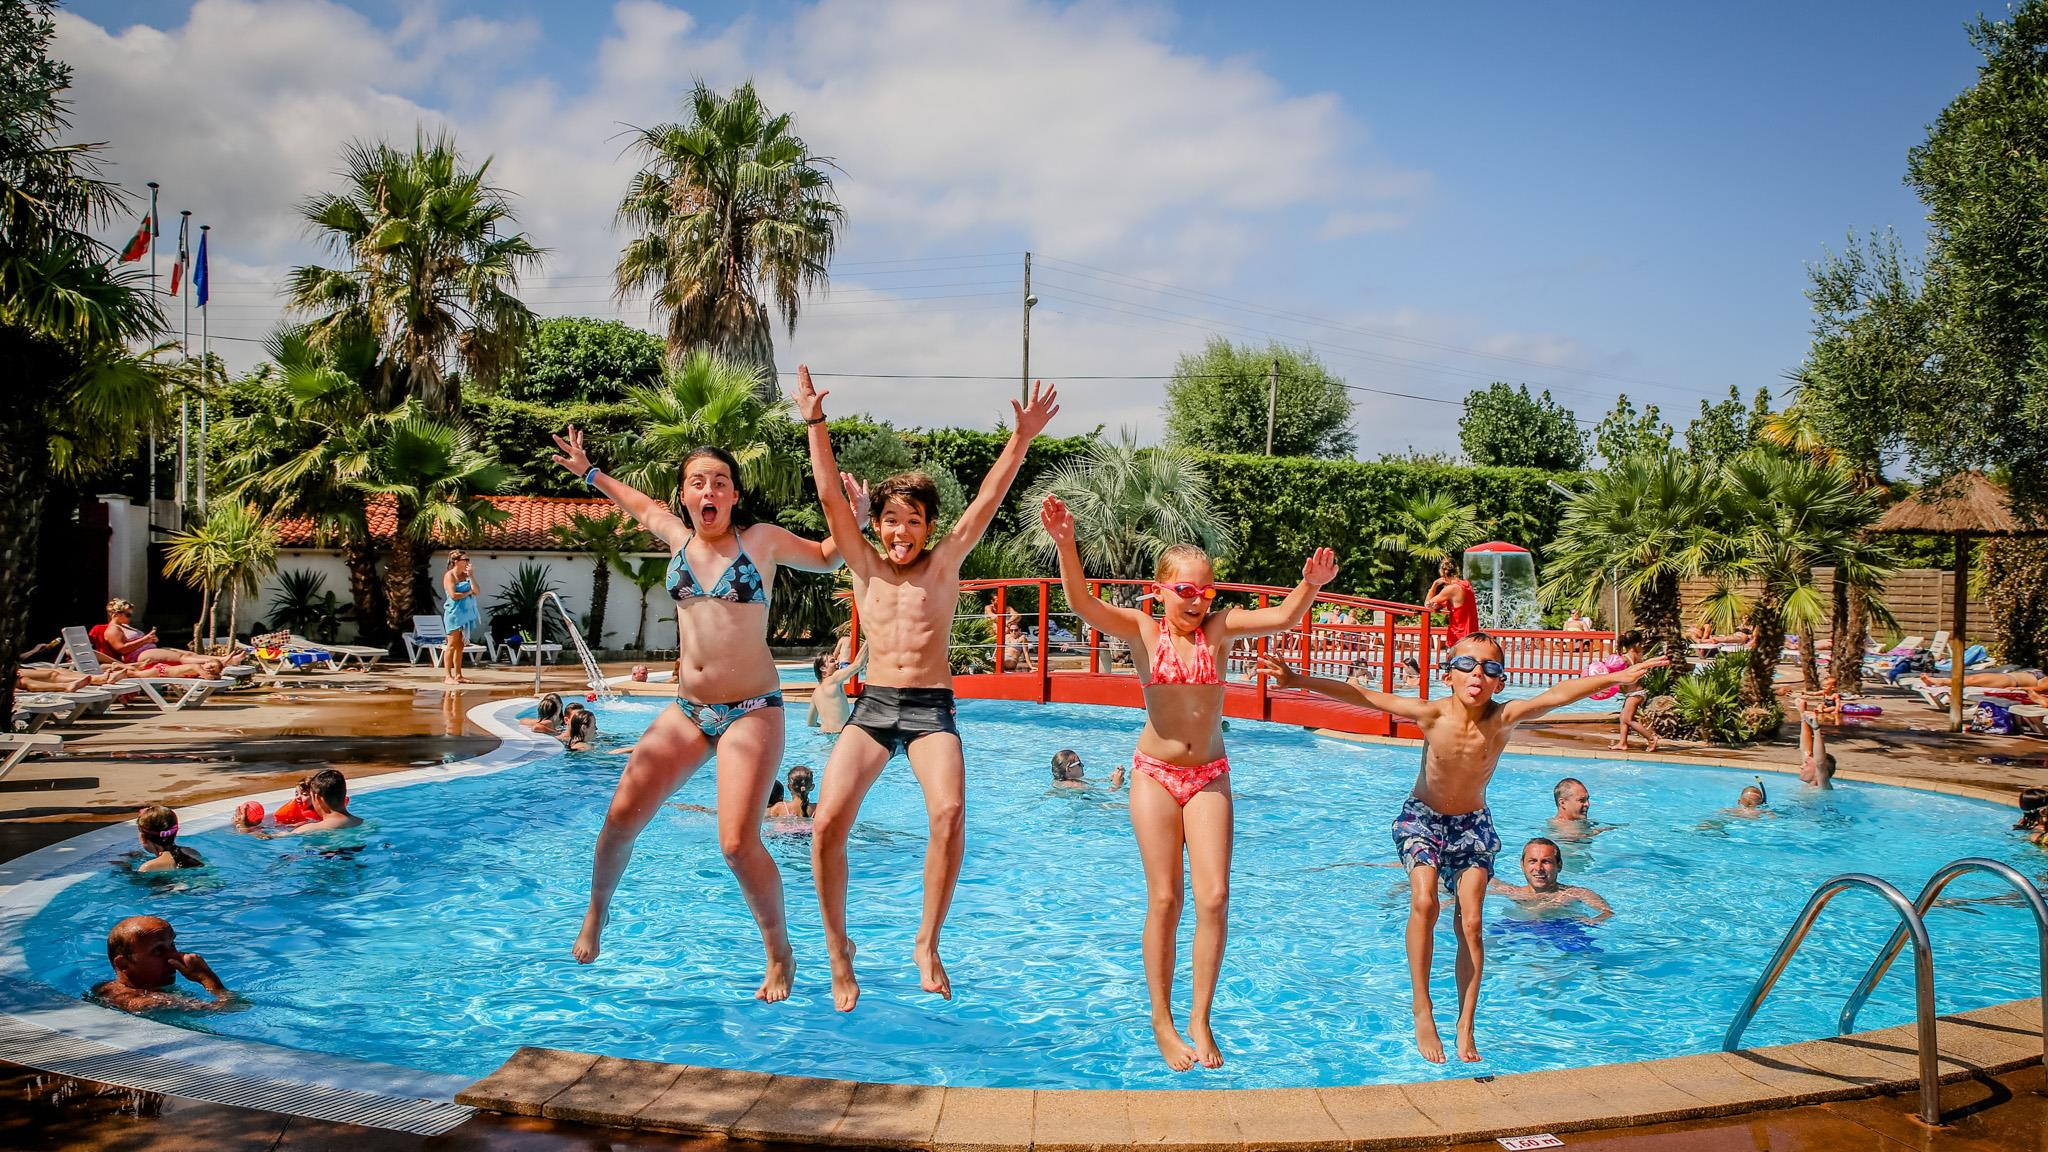 Establishment Camping Atlantica - Saint Jean-de-Luz